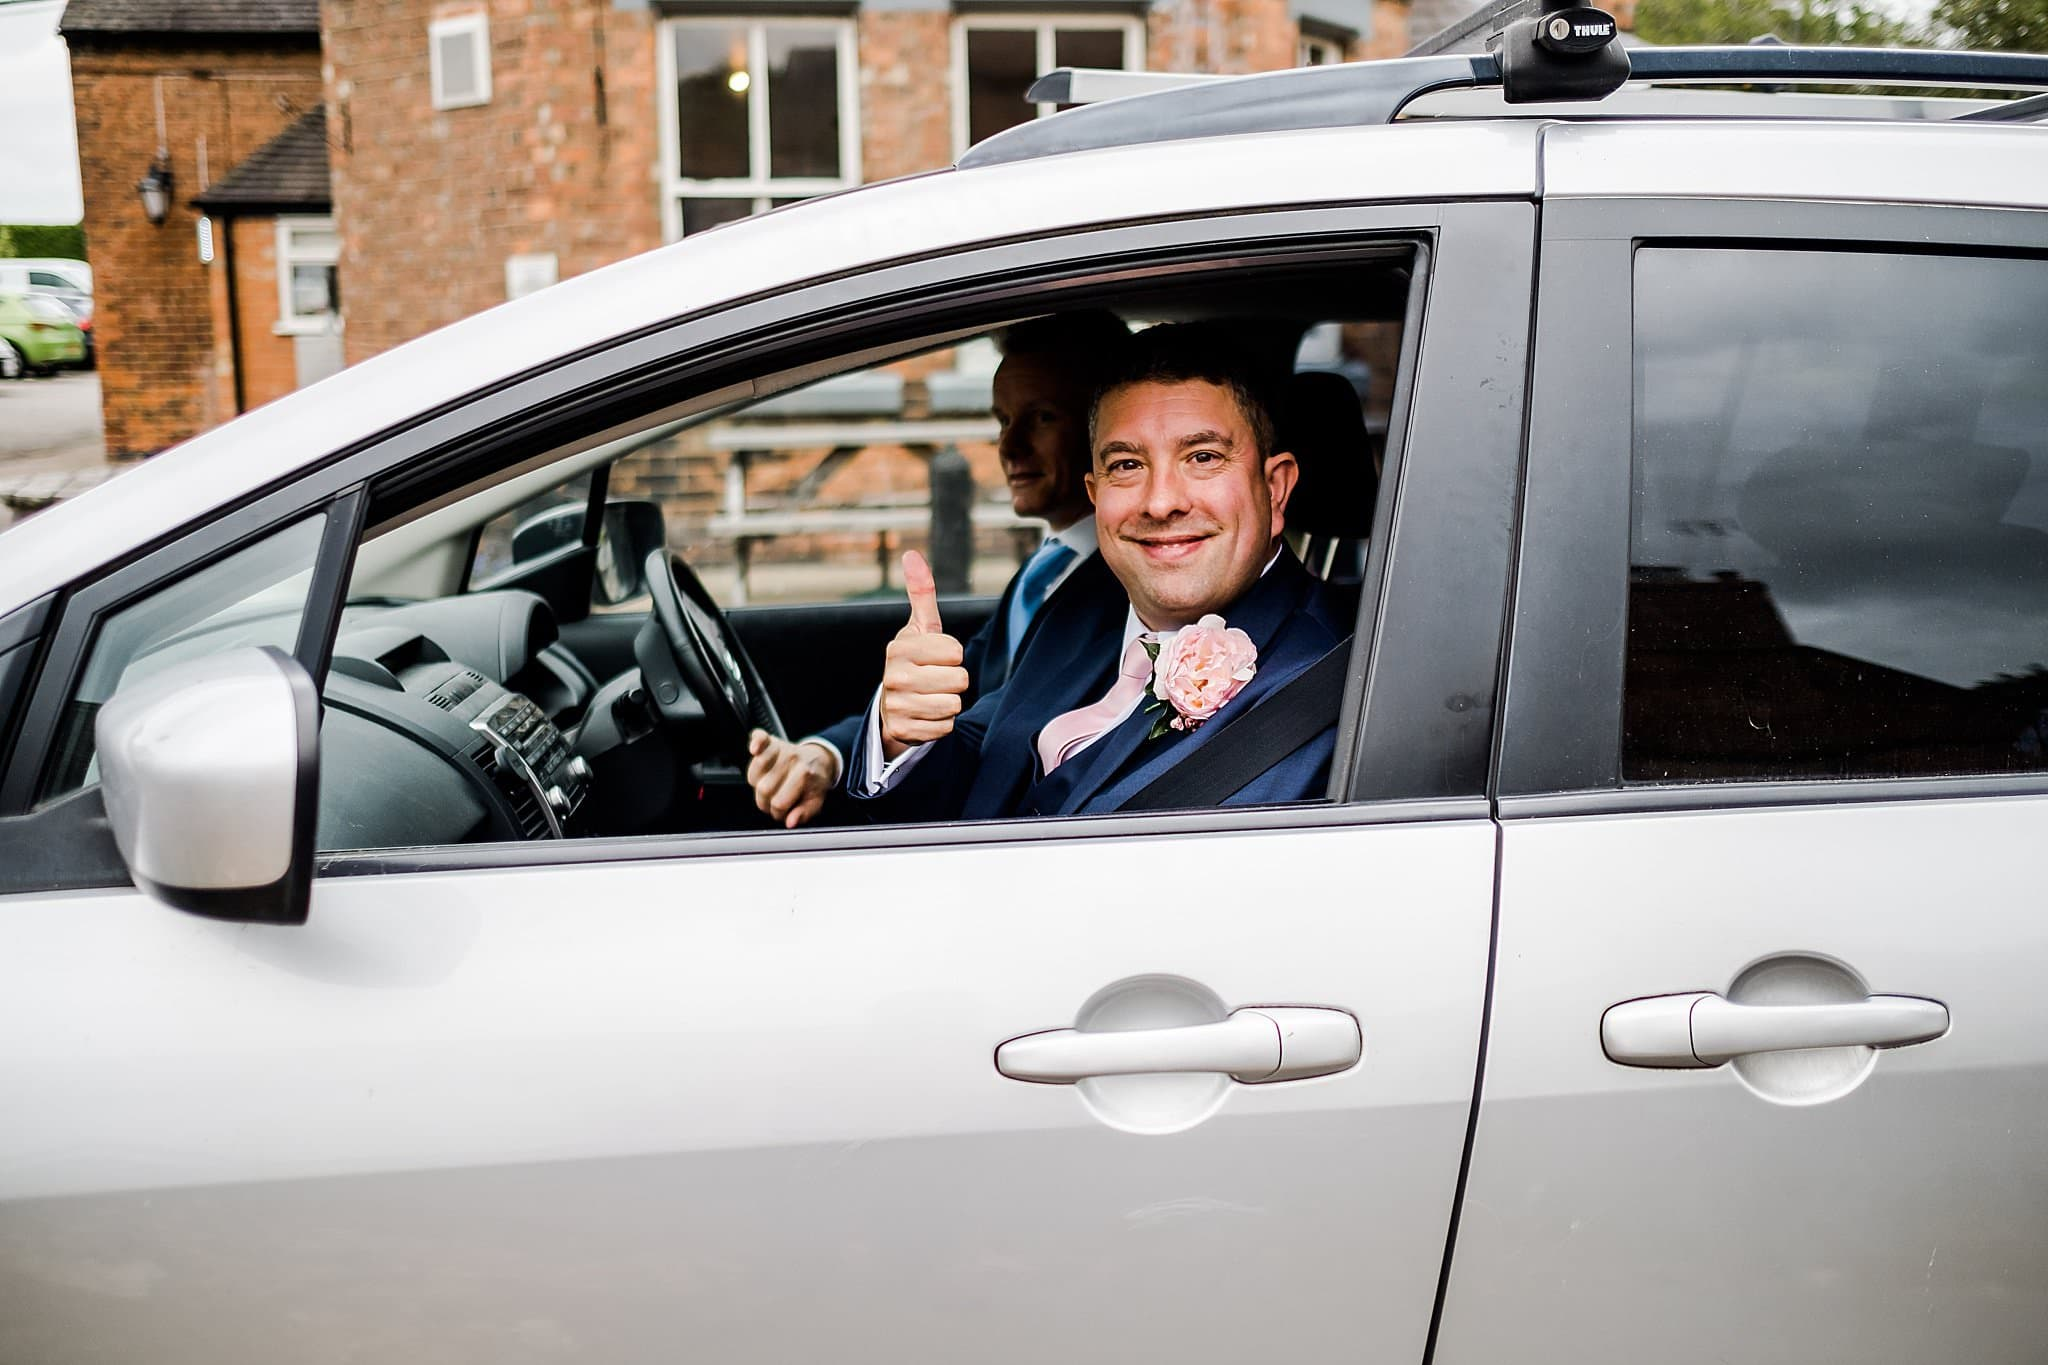 Groom thumbs up on his way to ceremony